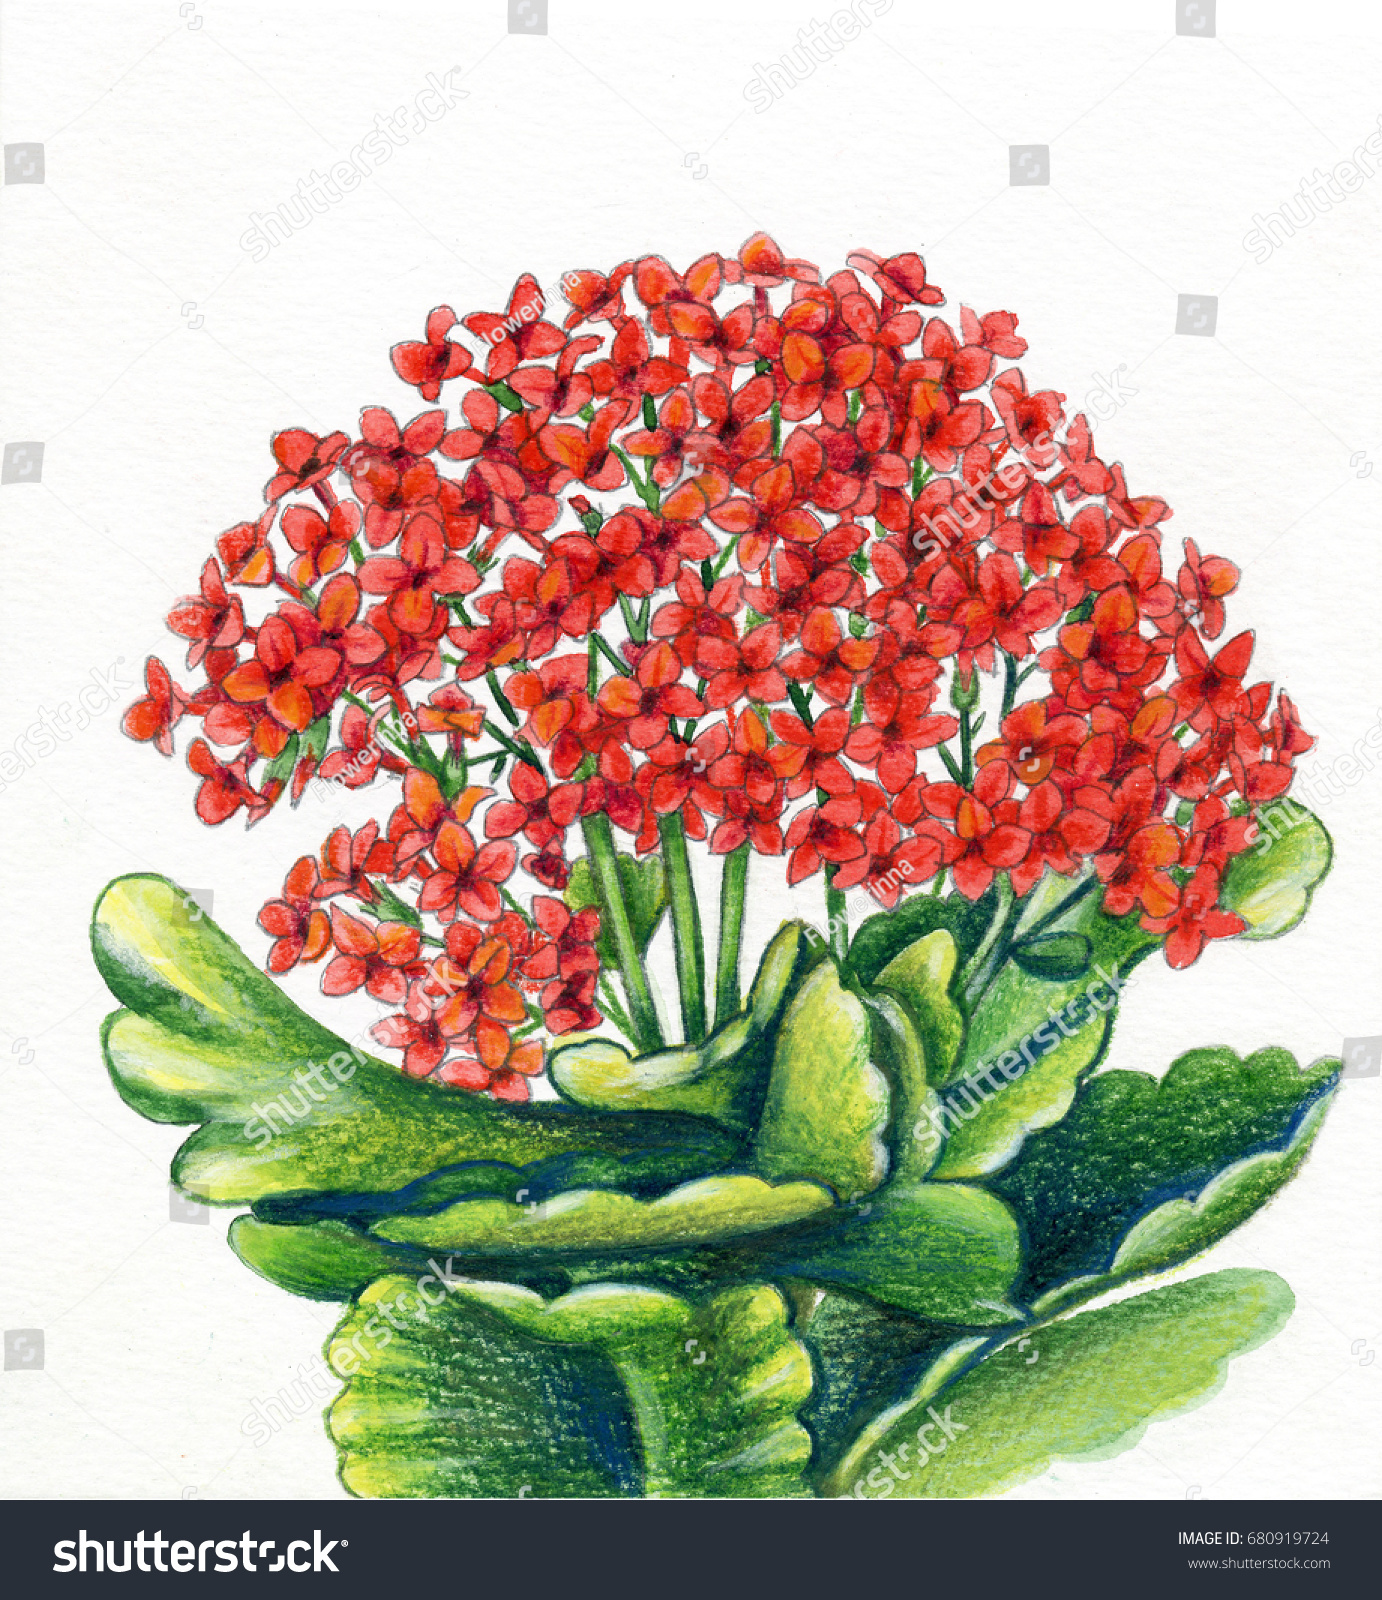 Colored Pencils Red Flowerpot Flowers Saturated Stock Illustration ...